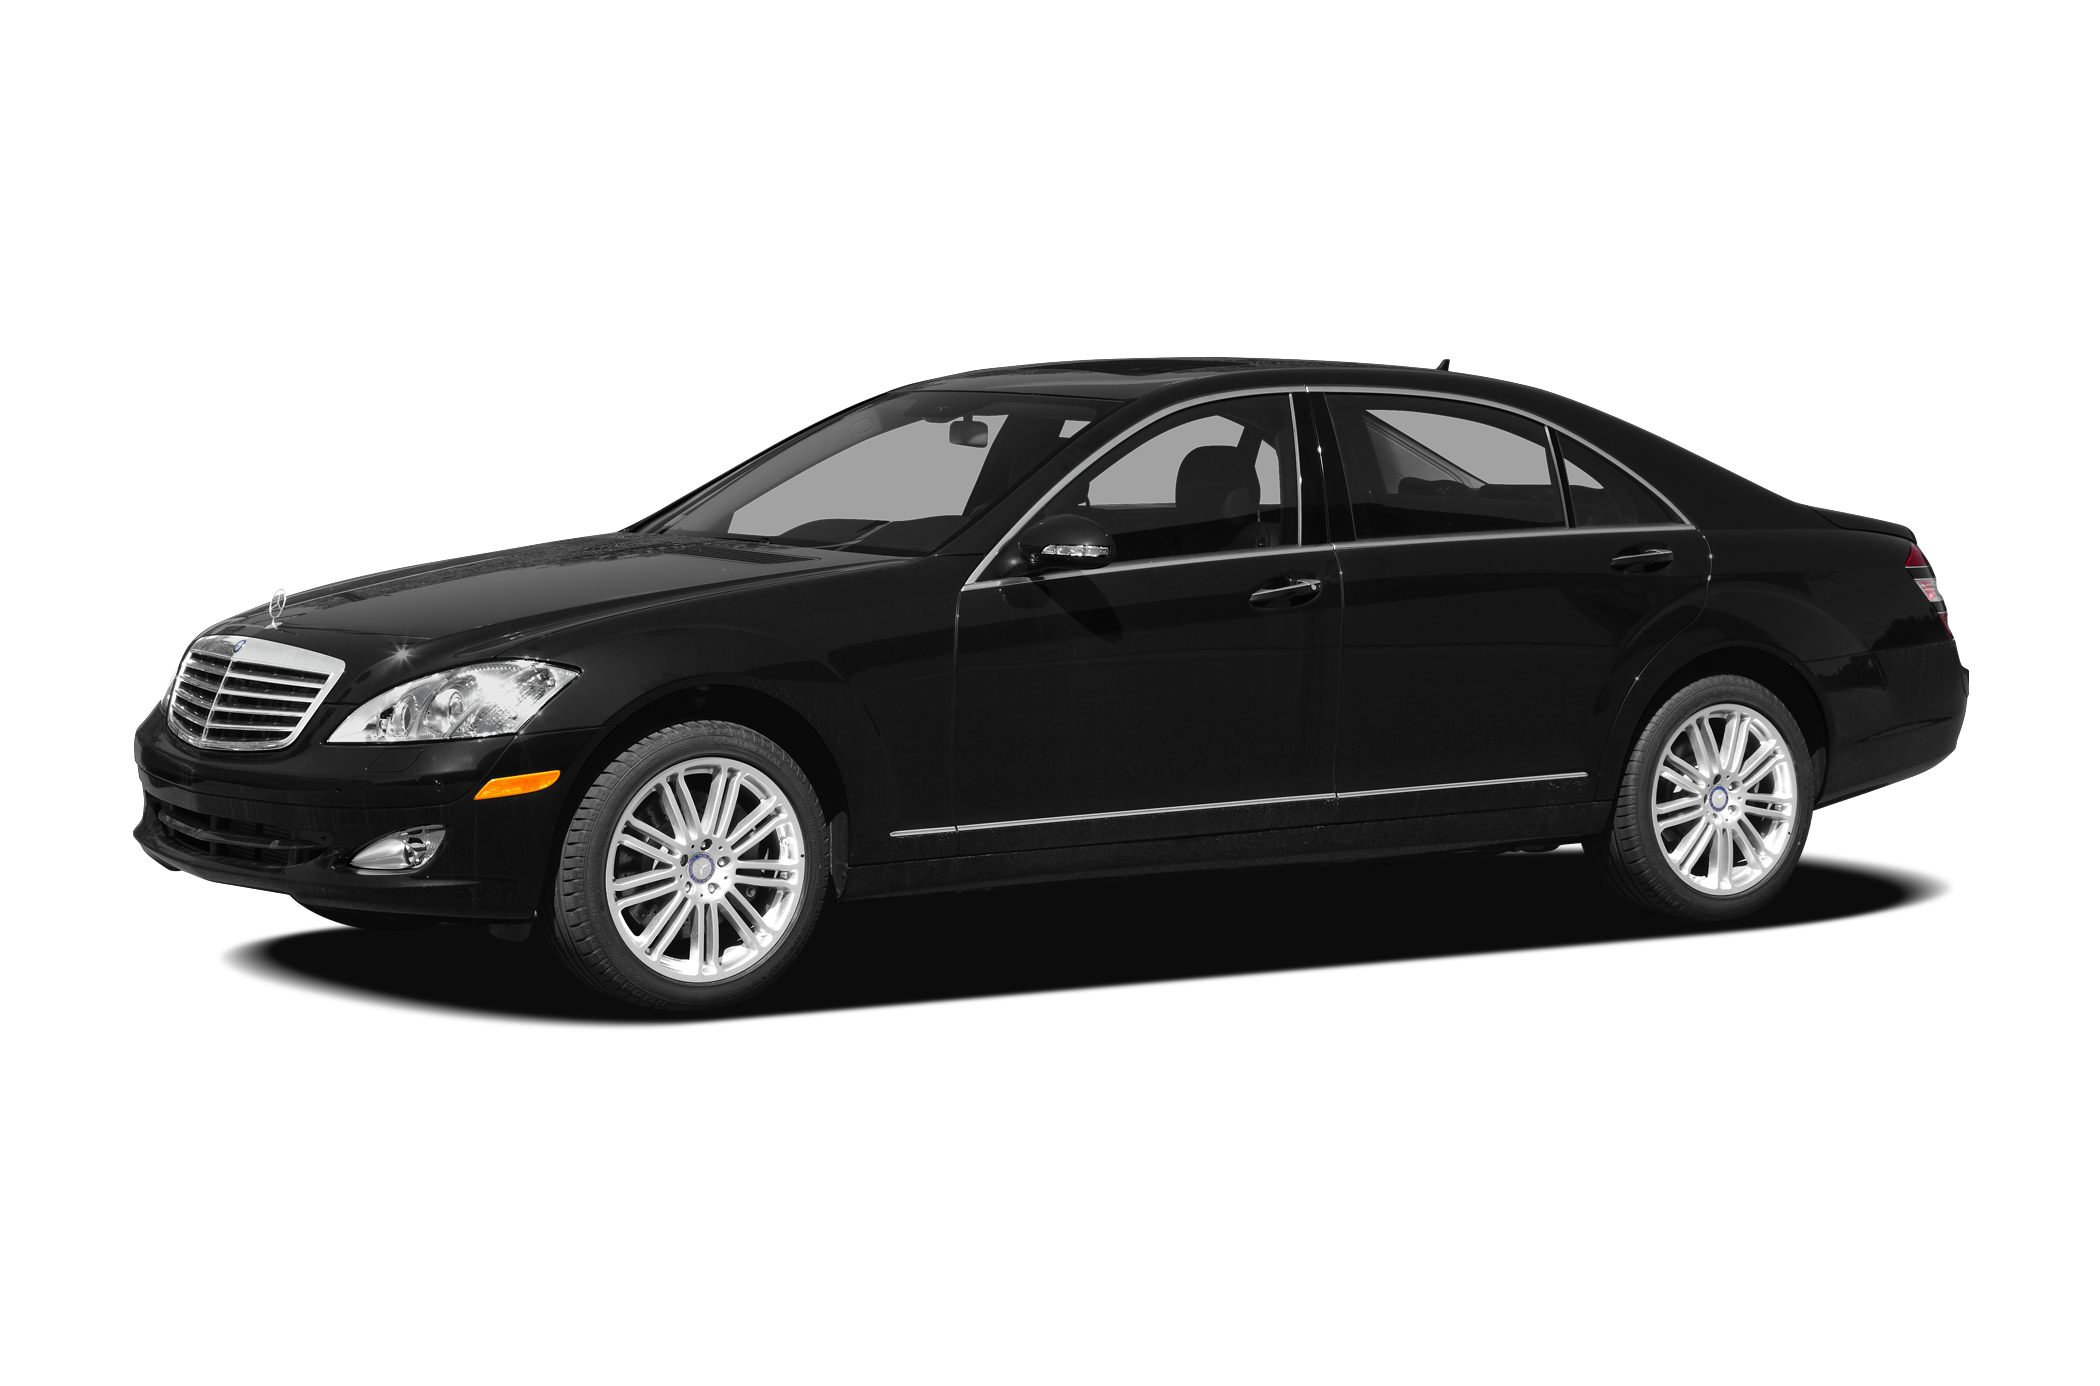 2009 MERCEDES S-Class S550 4MATIC PREMIUM PACKAGE IMMACULATE CONDITION S CLASS EXCELLENT CONDITIO